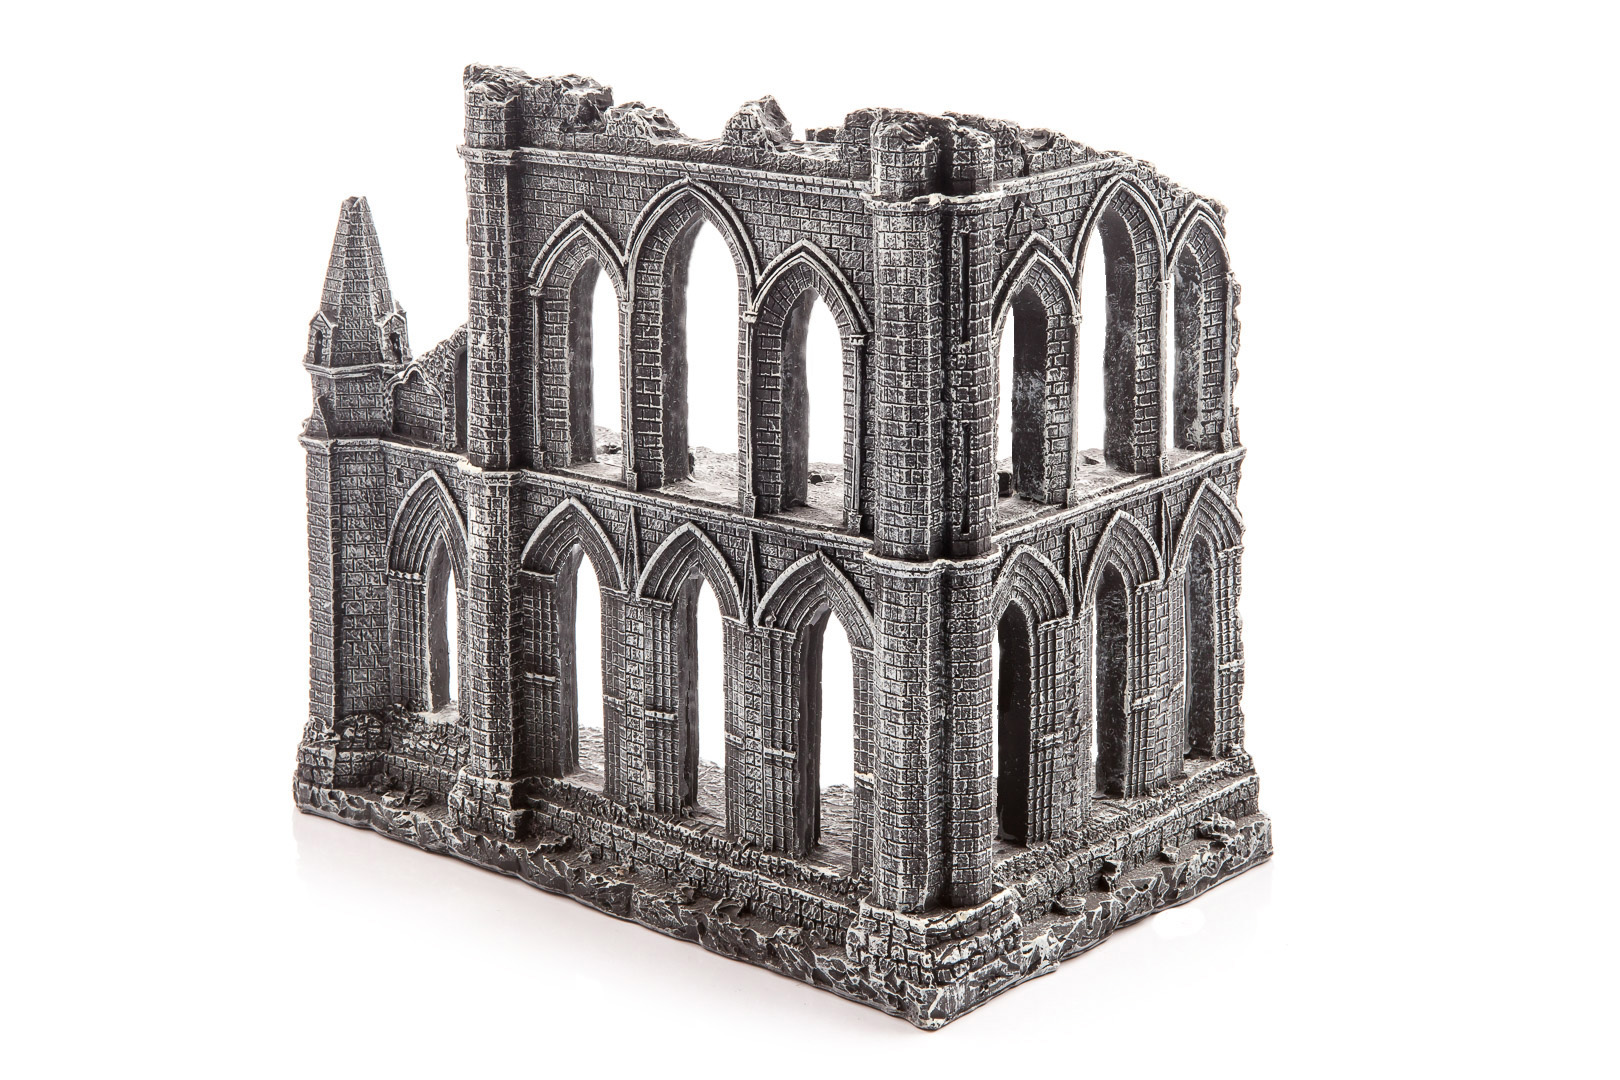 Gamemat Eu's Gothic Ruins Appear in A Small Set – OnTableTop